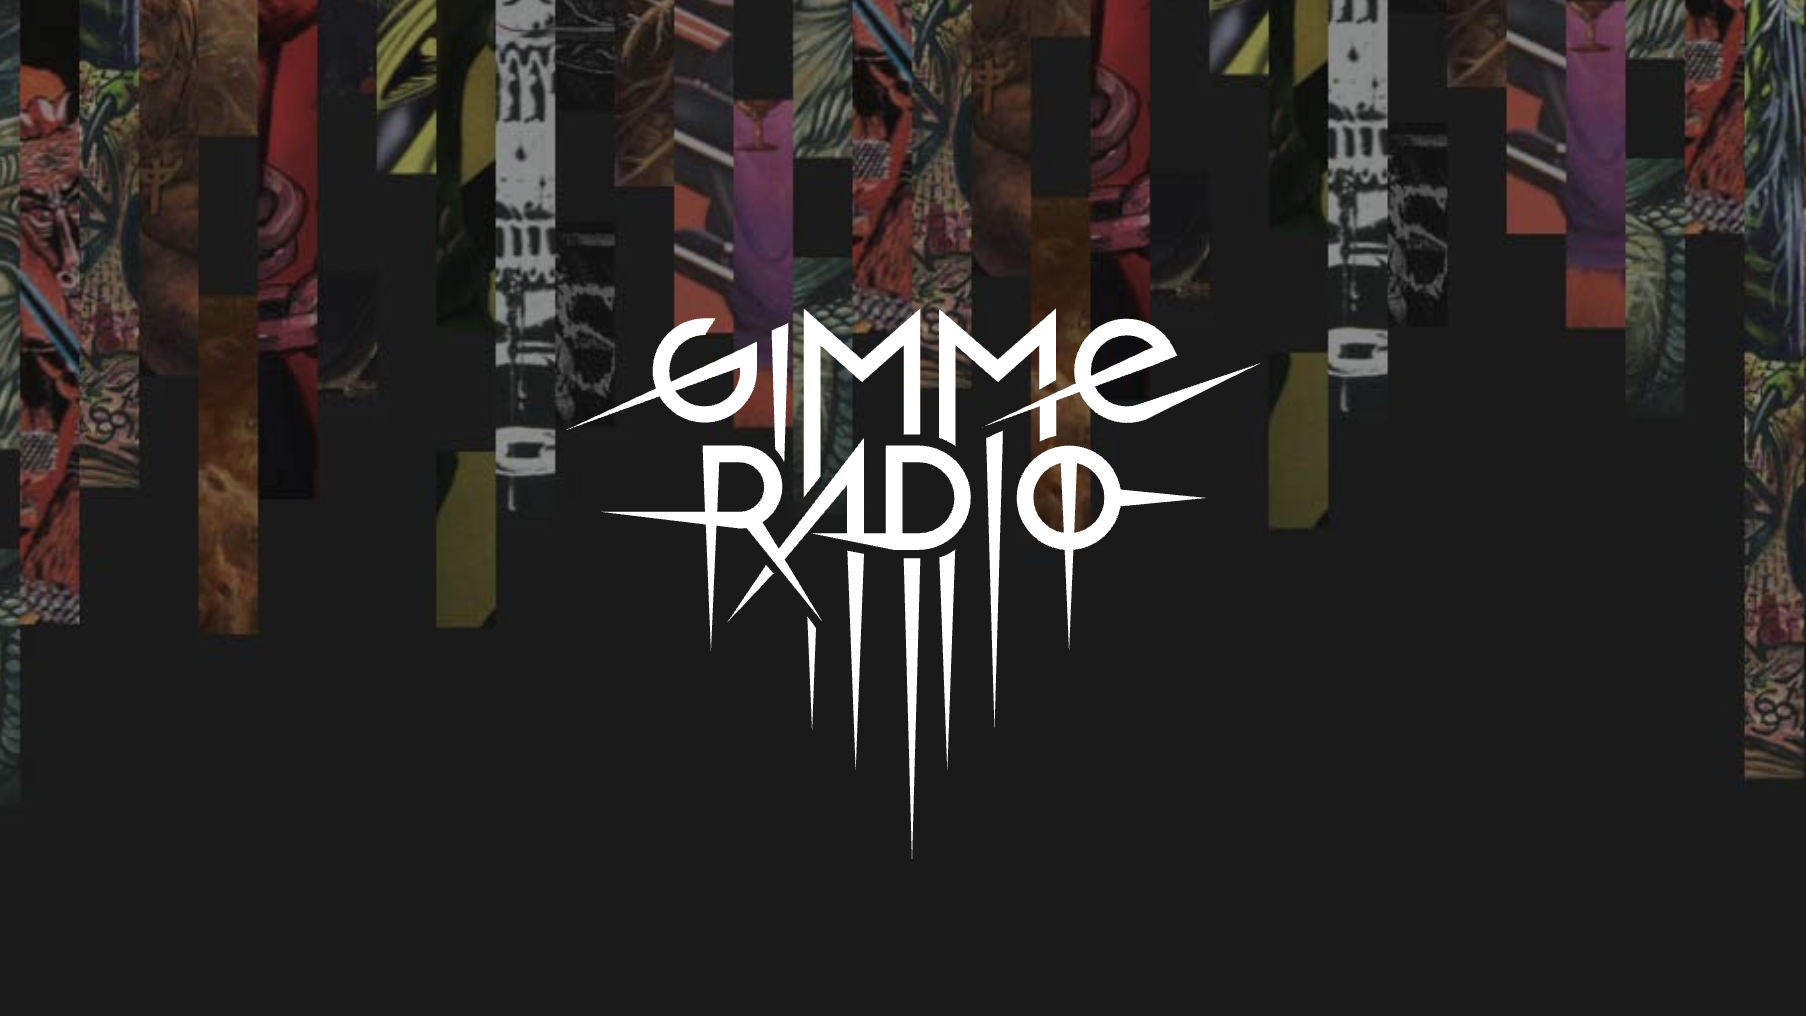 Gimme Radio – Live on Tape